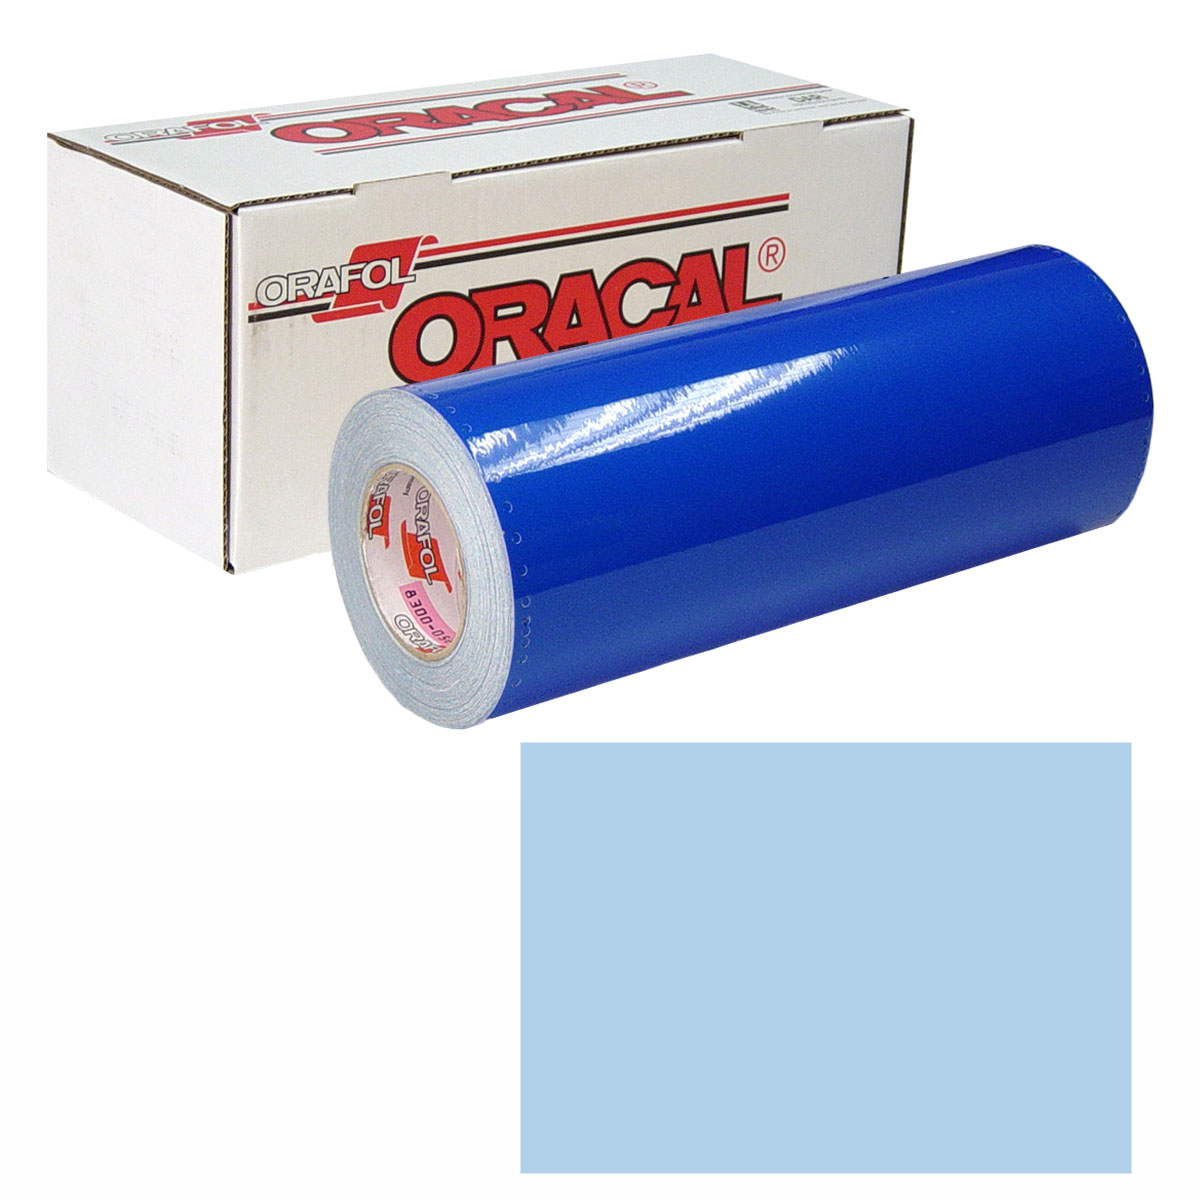 ORACAL 631 Unp 30in X 10yd 172 Powder Blue